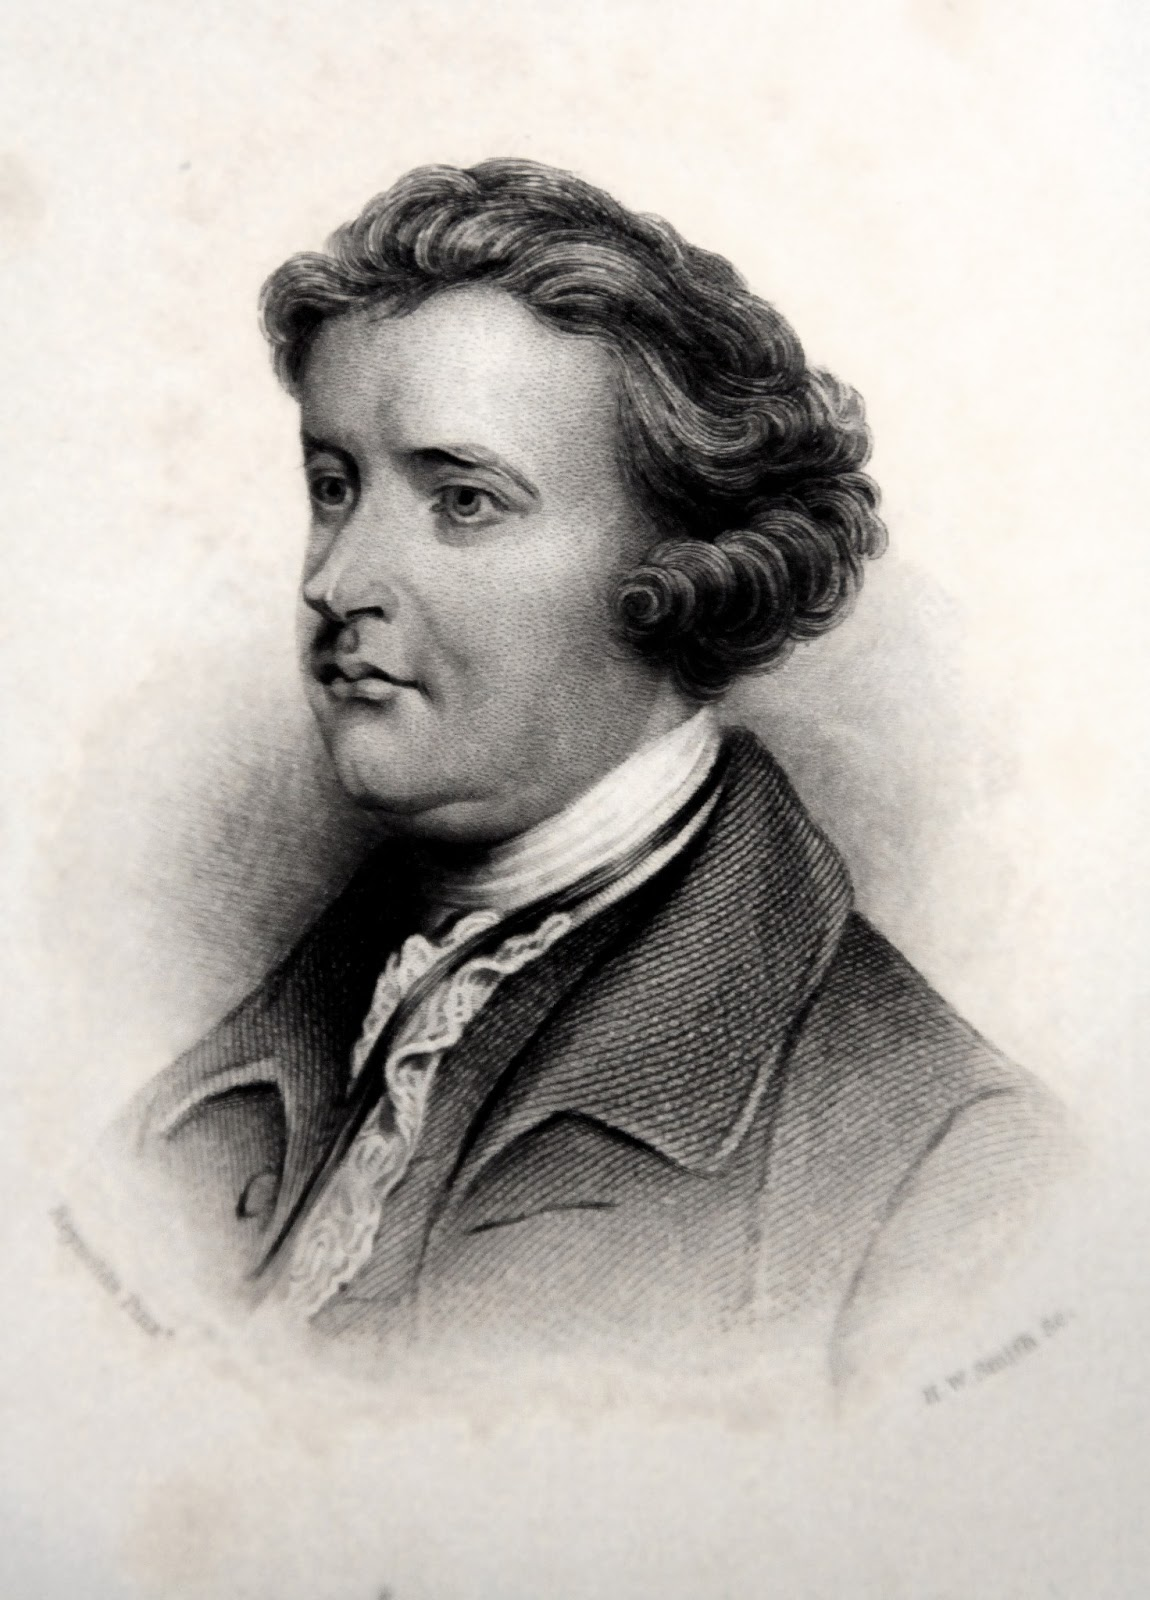 a biography of the edmund burke Edmund burke arrived in newfoundland on 15 june 1785 as a young priest recommended to the newfoundland mission's first superior, james louis o'donel ,.